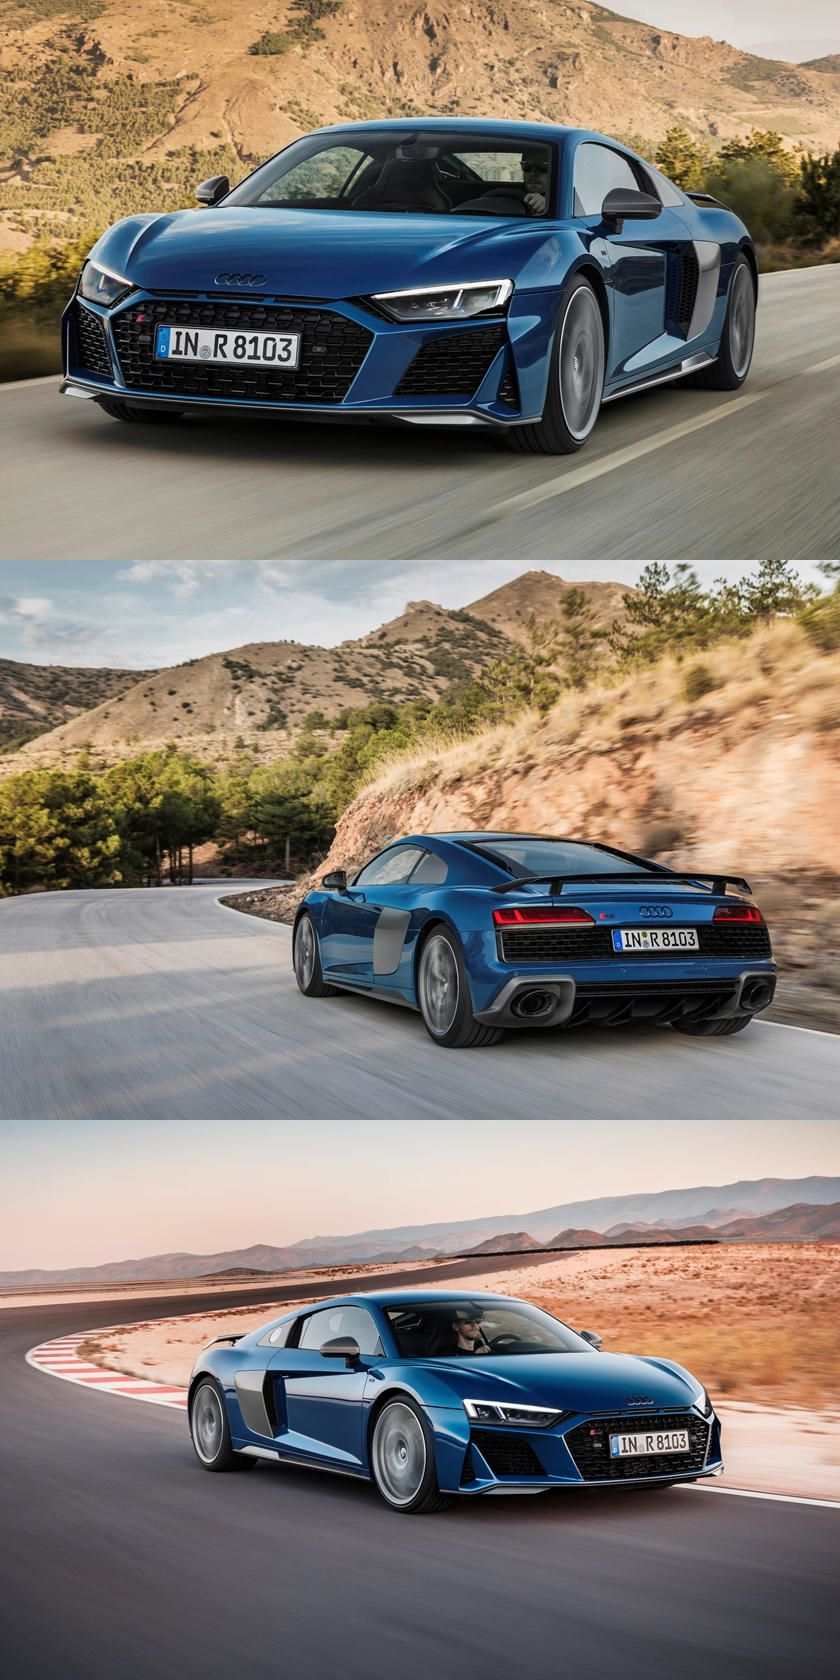 Take Advantage Of This Secret 2020 Audi R8 Discount in